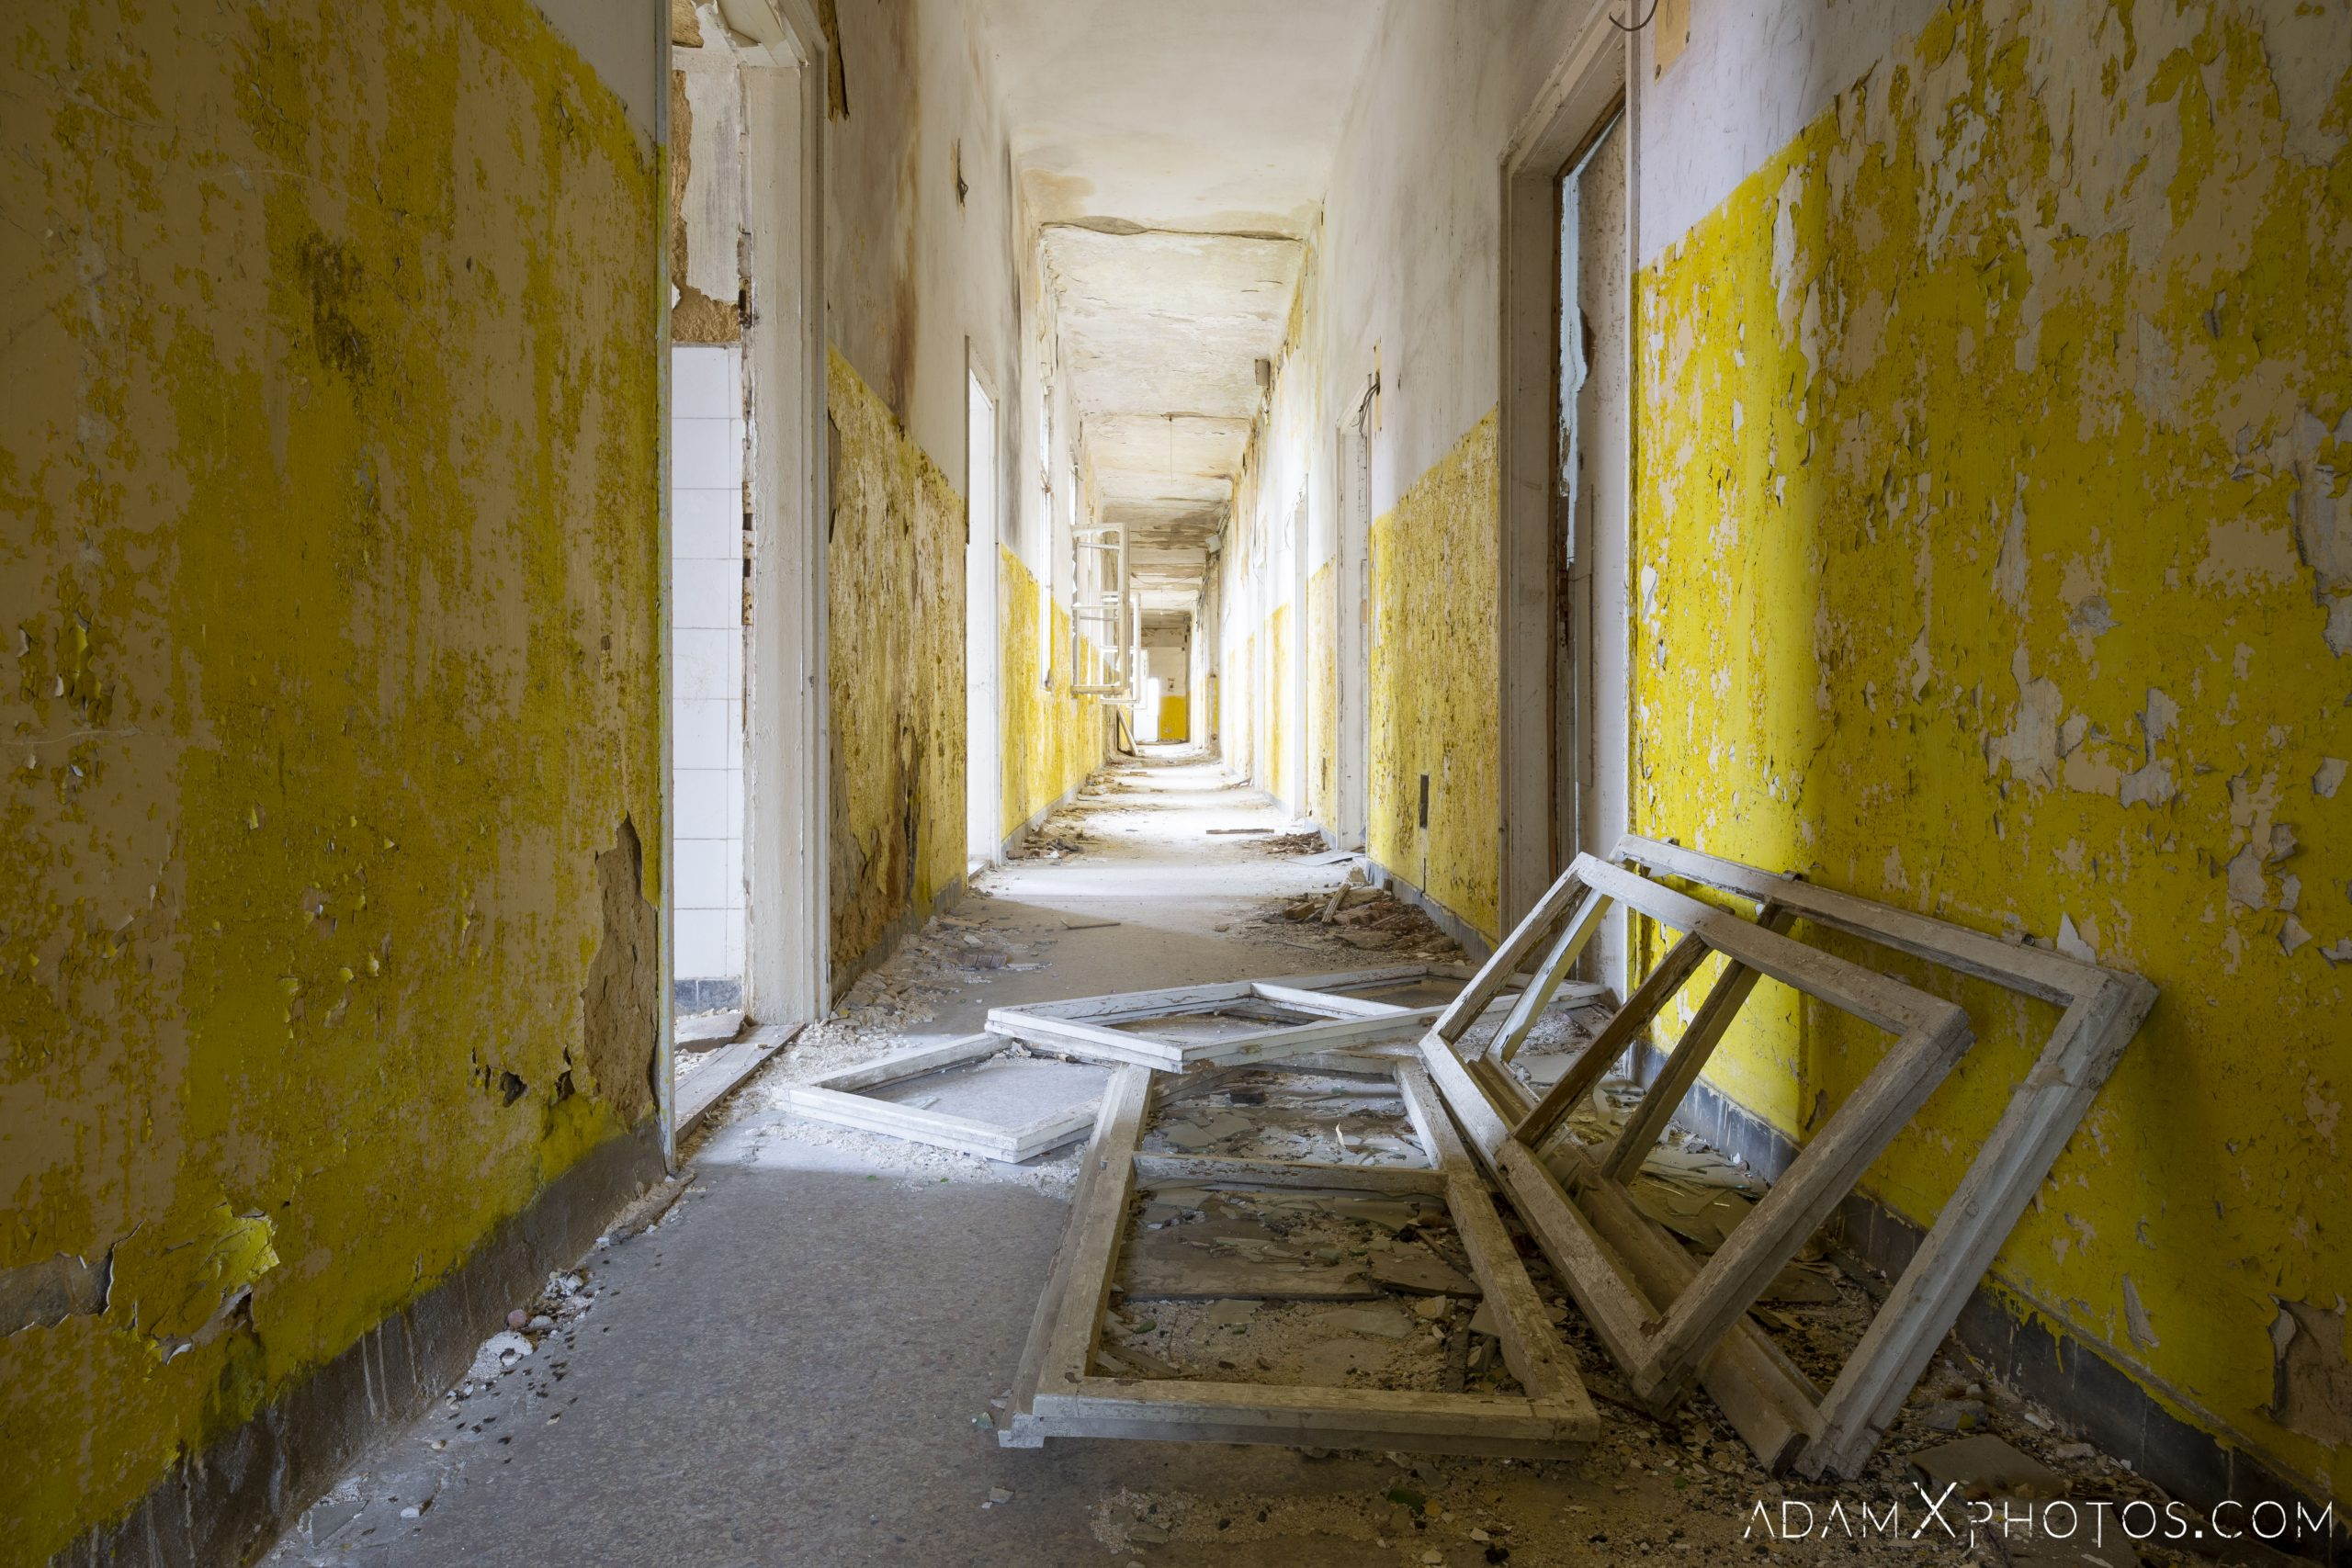 Corridor yellow white Hajmaskér Barracks Hungary Adam X Urbex Urban Exploration Access 2018 Abandoned decay ruins lost forgotten derelict location creepy haunting eerie